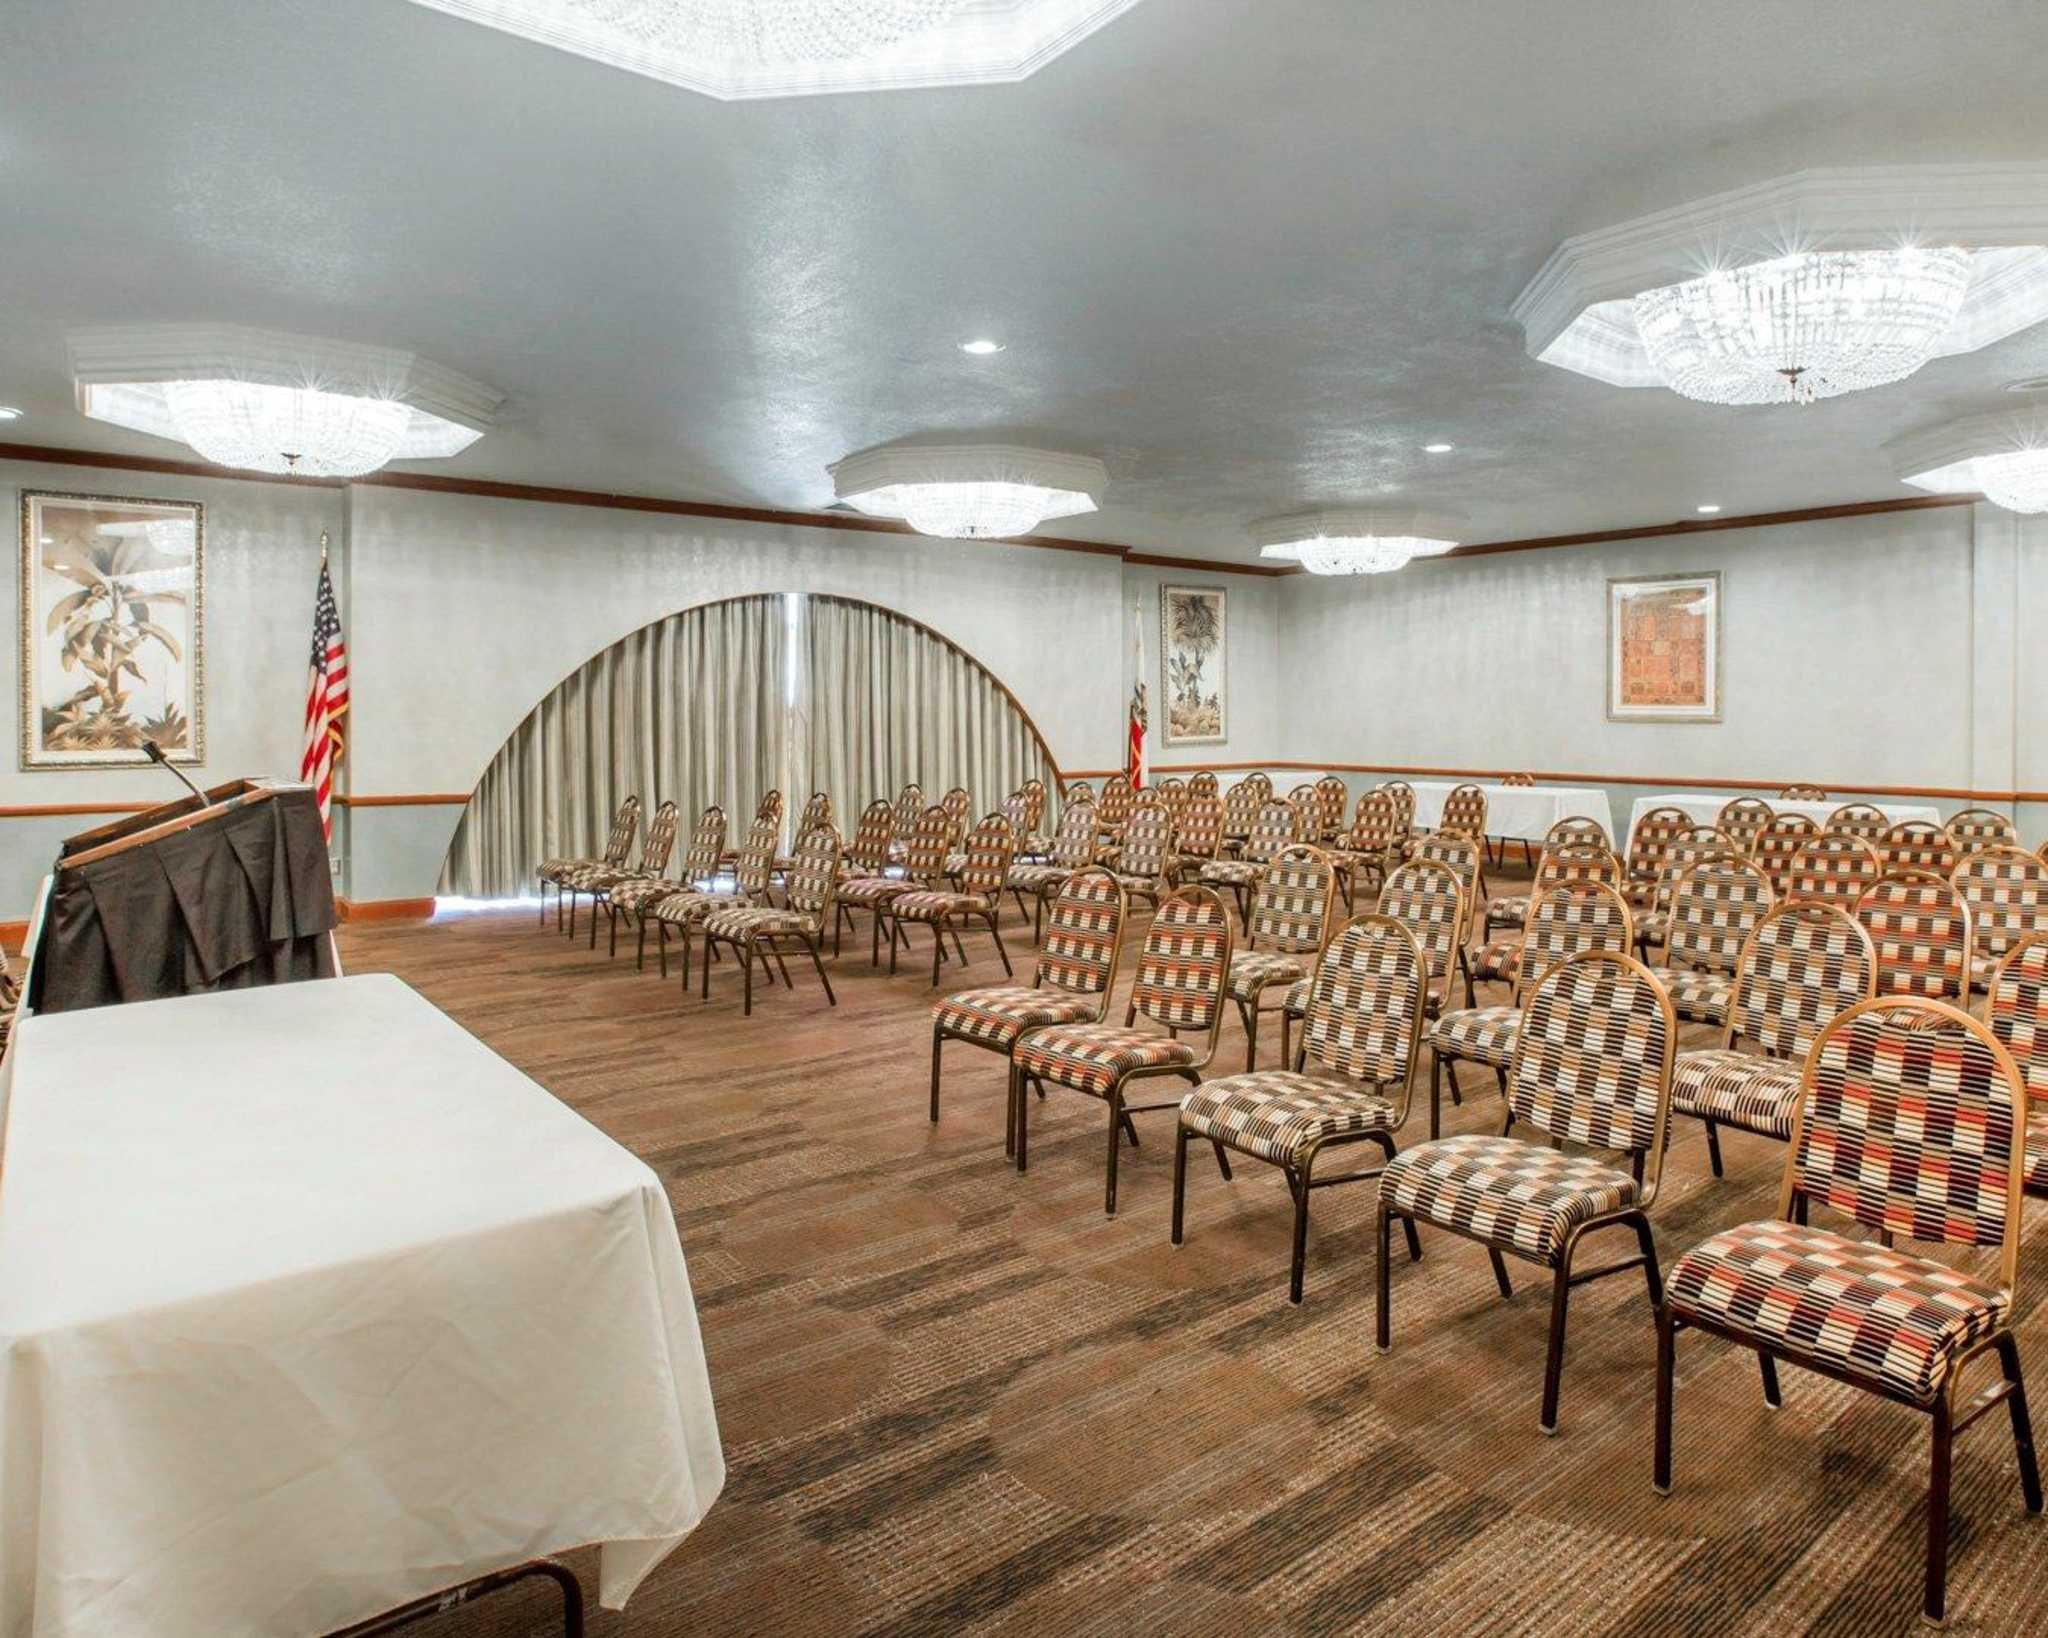 Clarion Inn Conference Center image 22